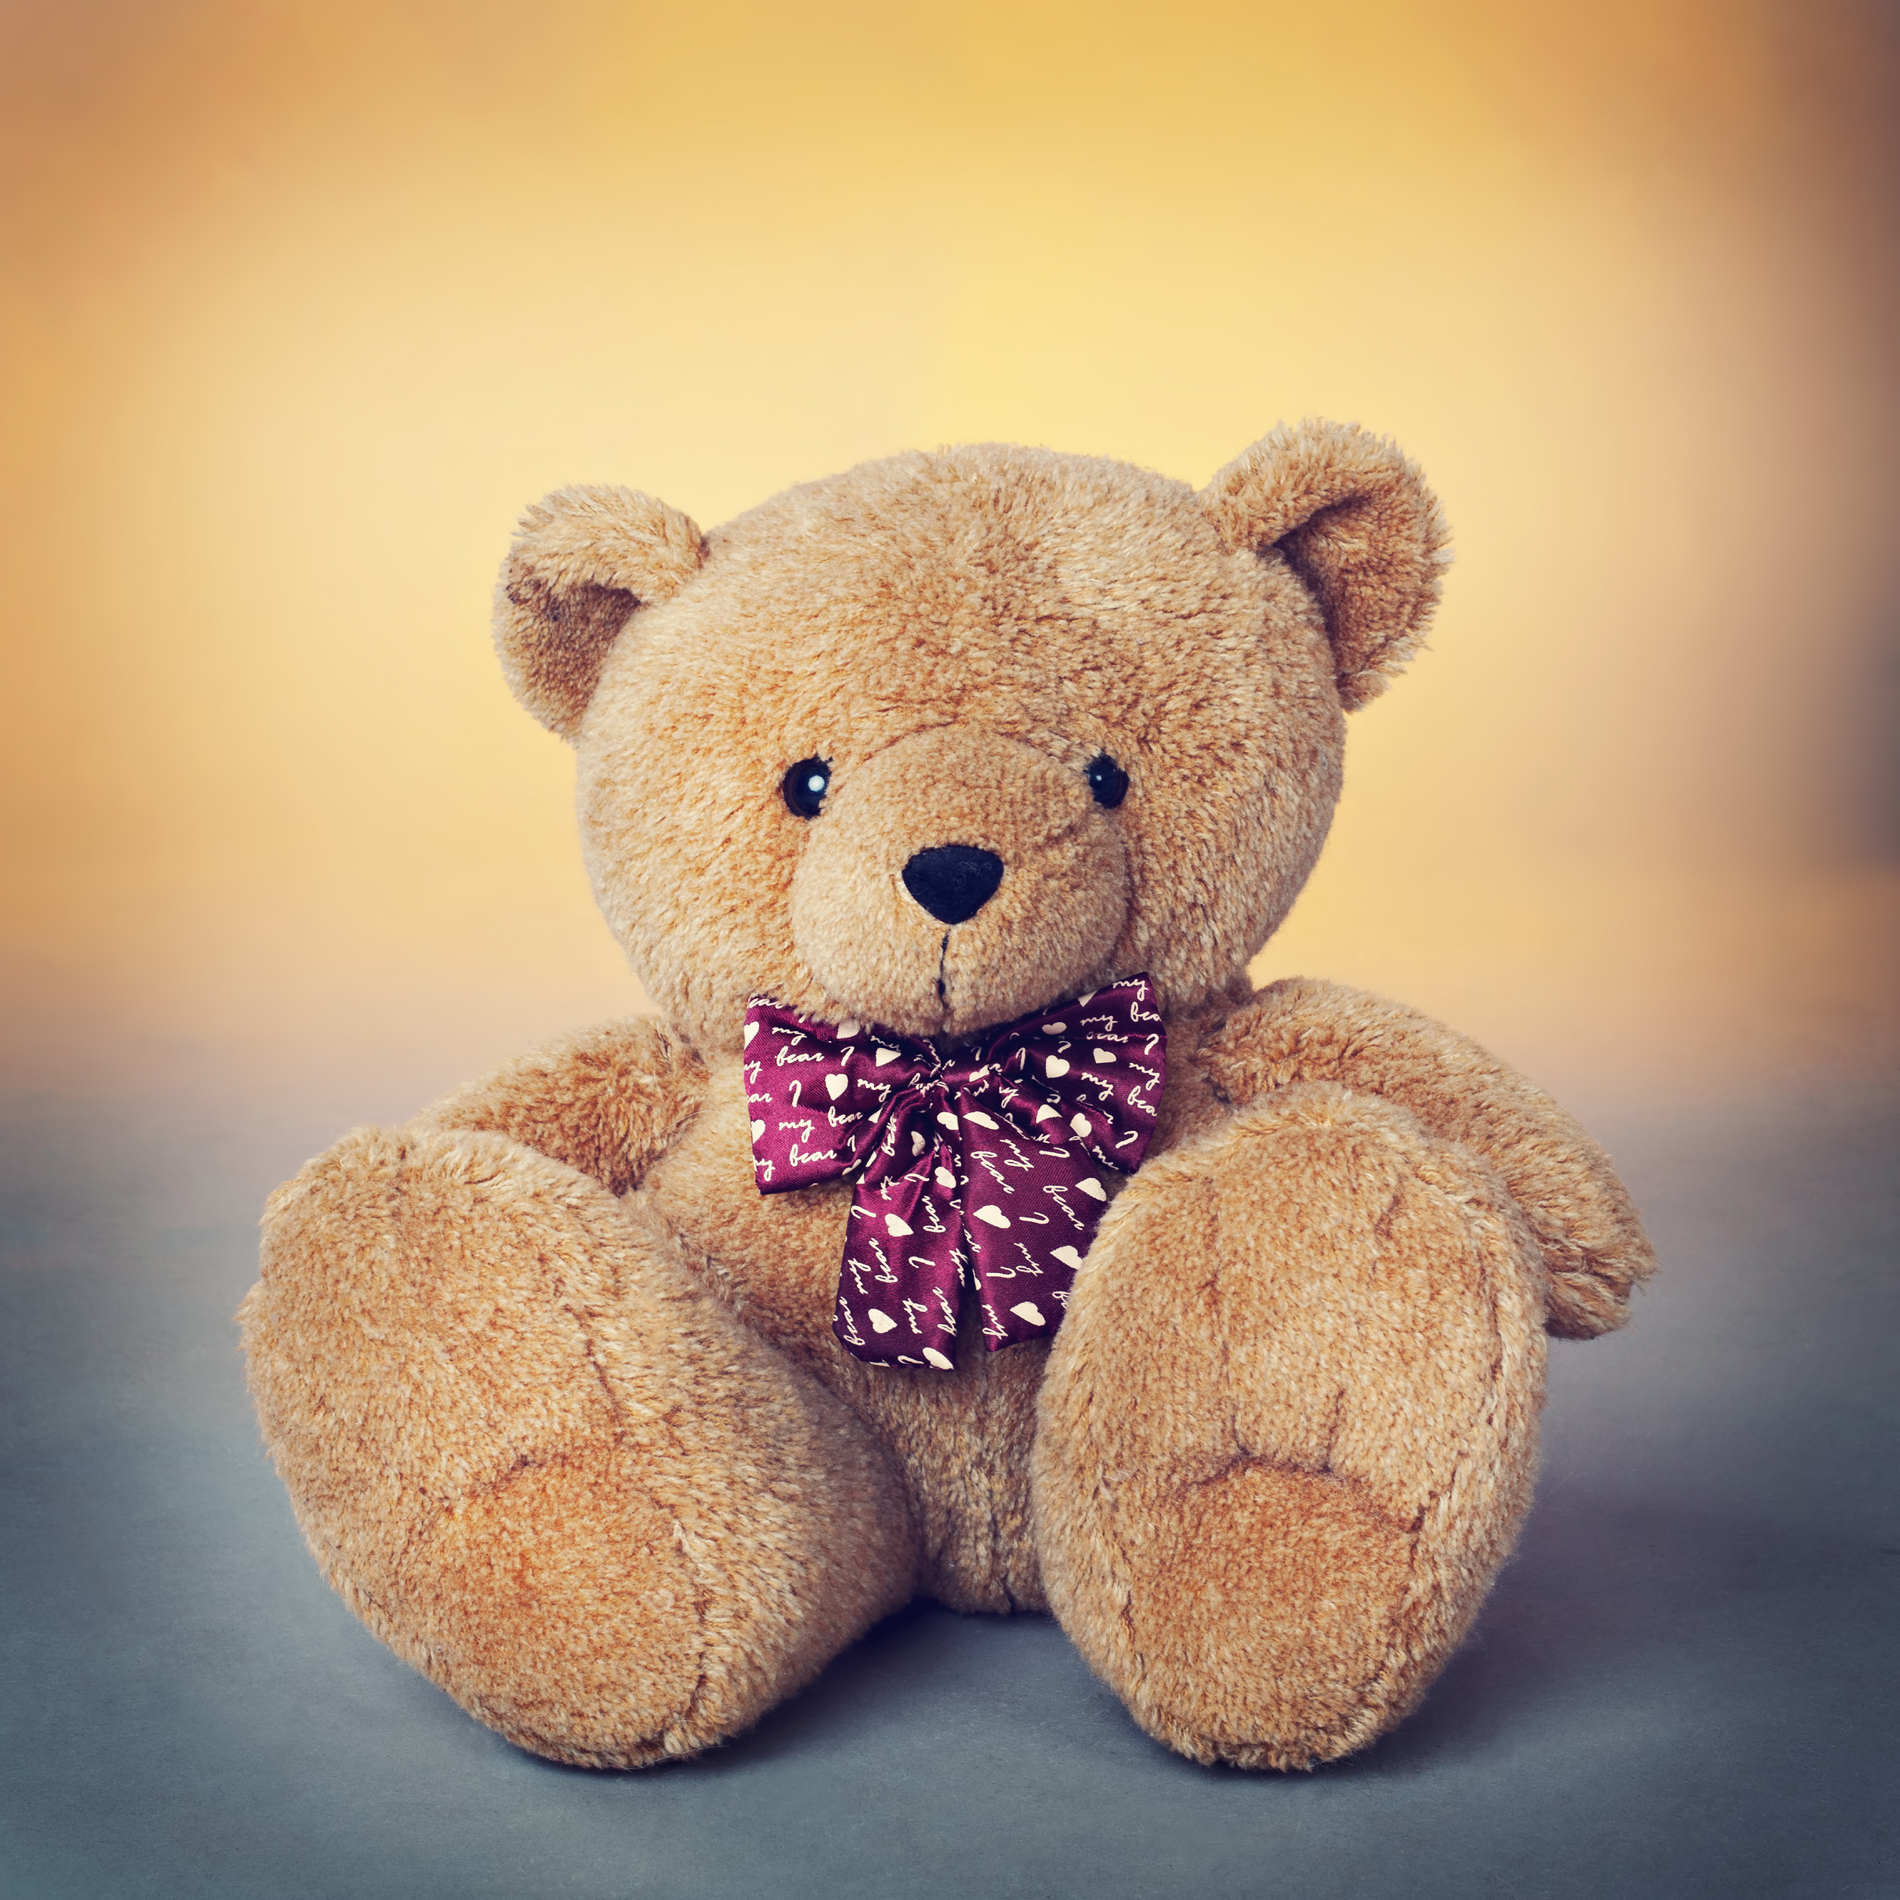 Teddy bear 52611